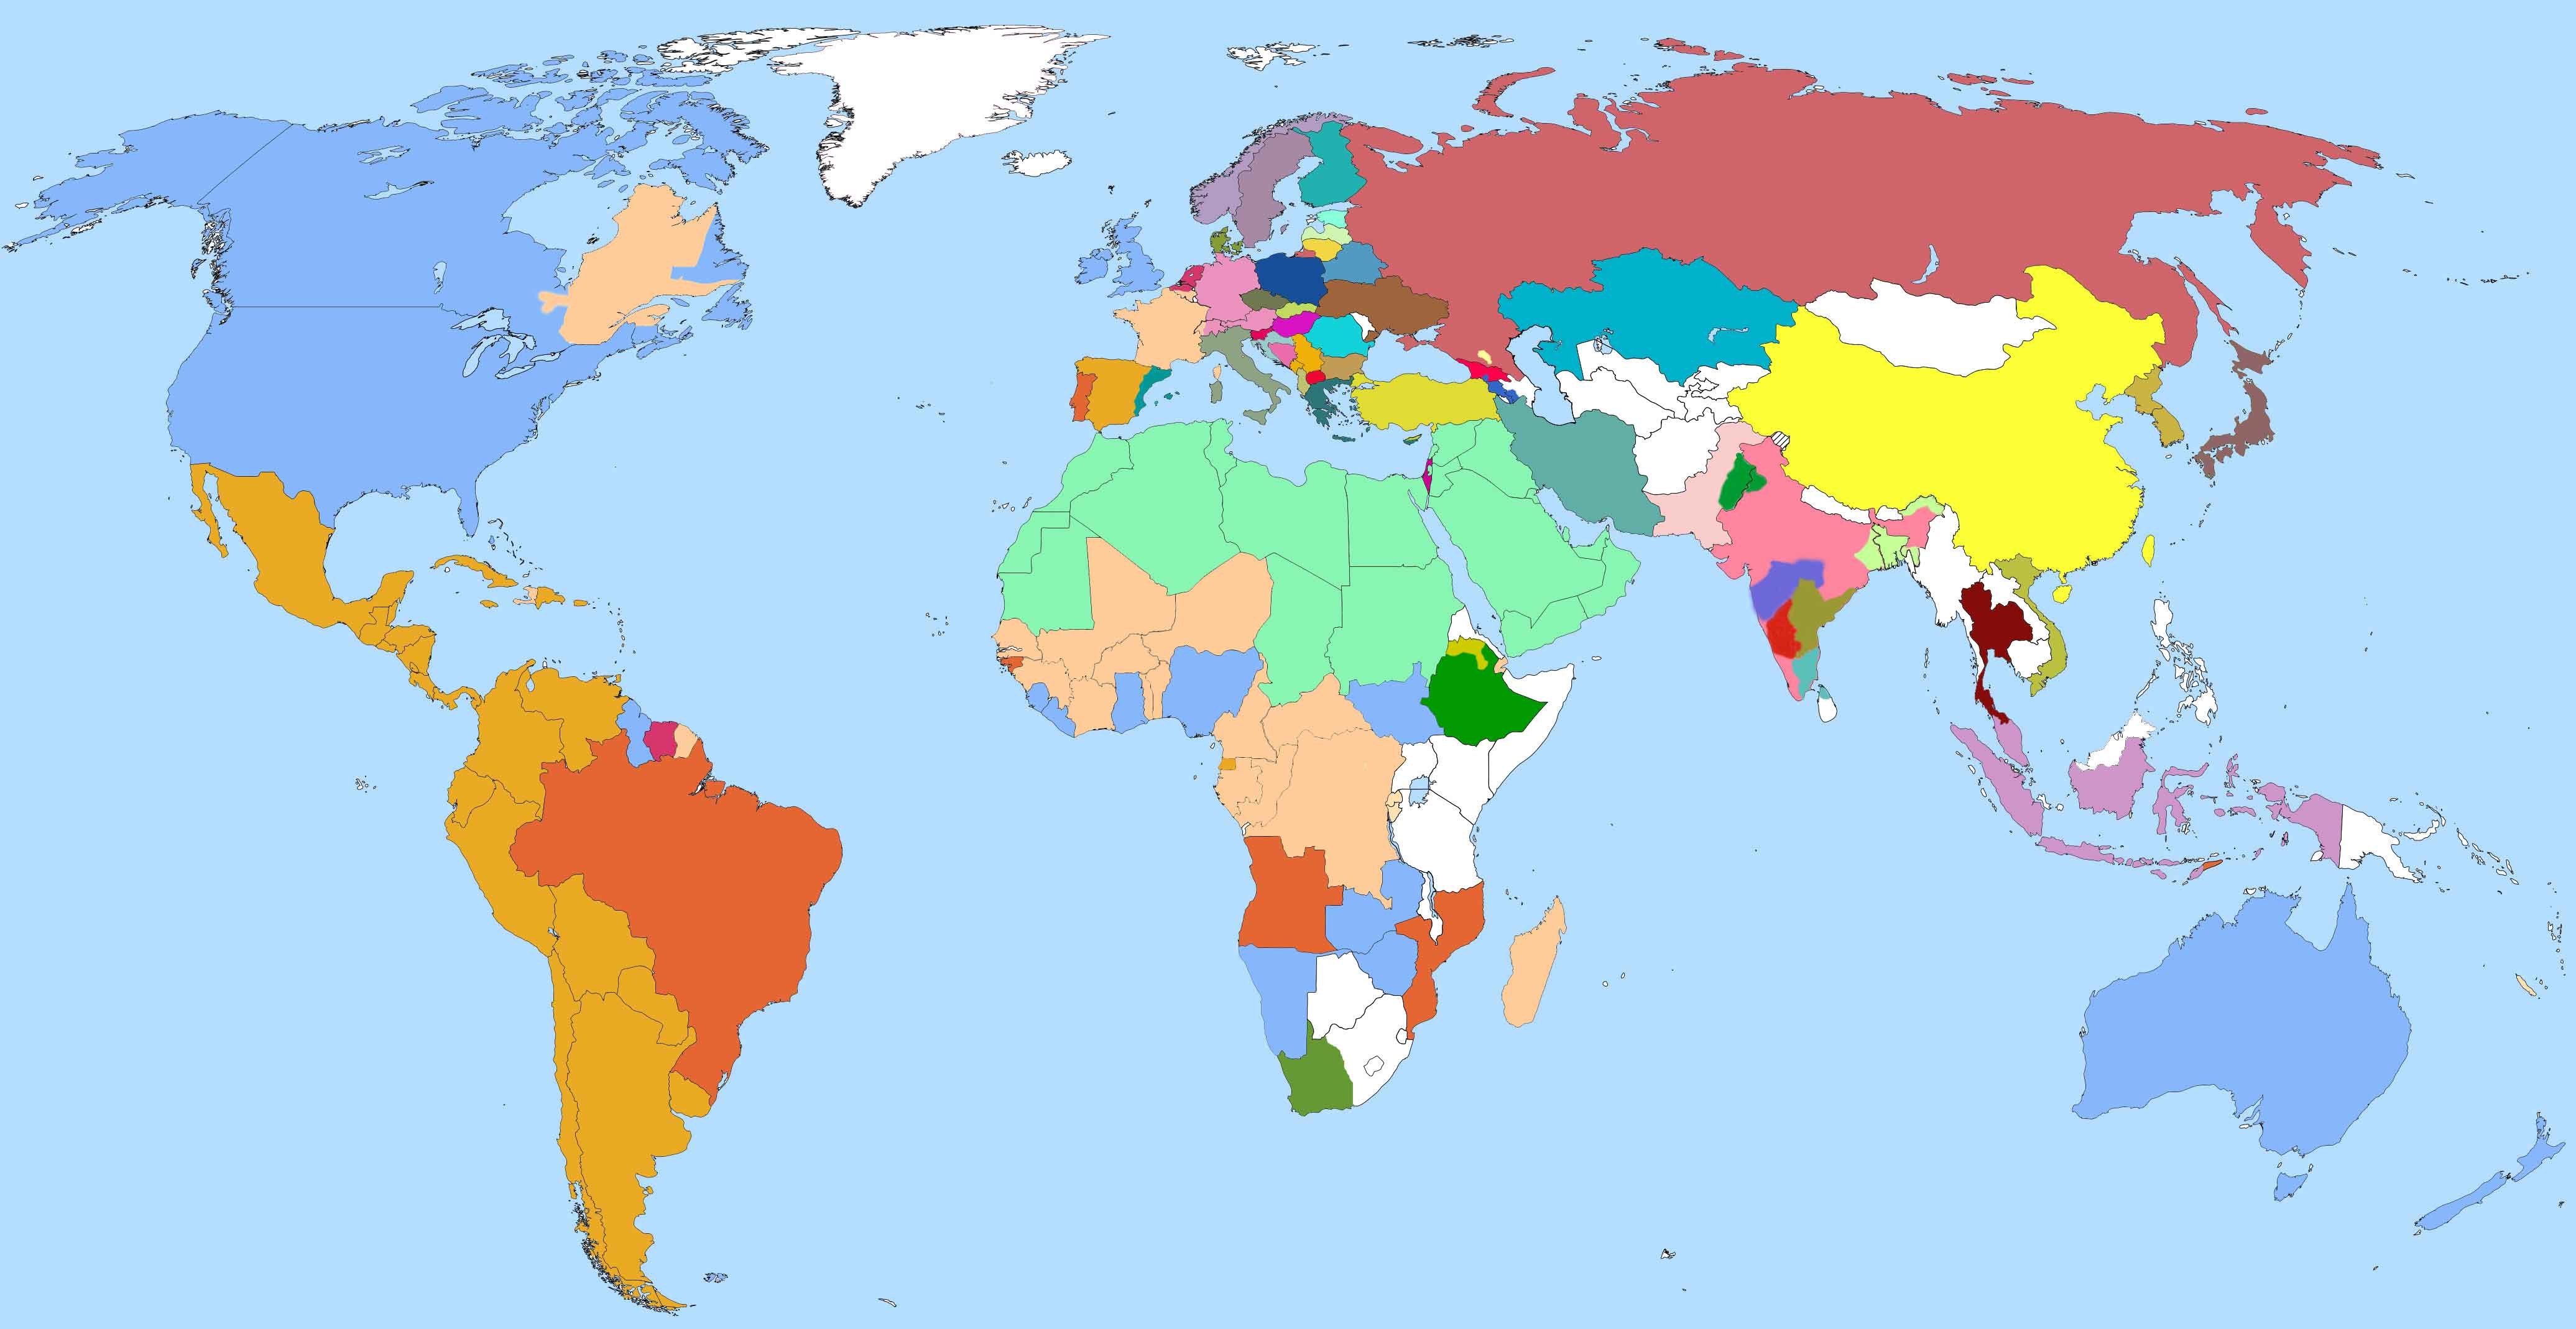 Or choose from our map of world languages.